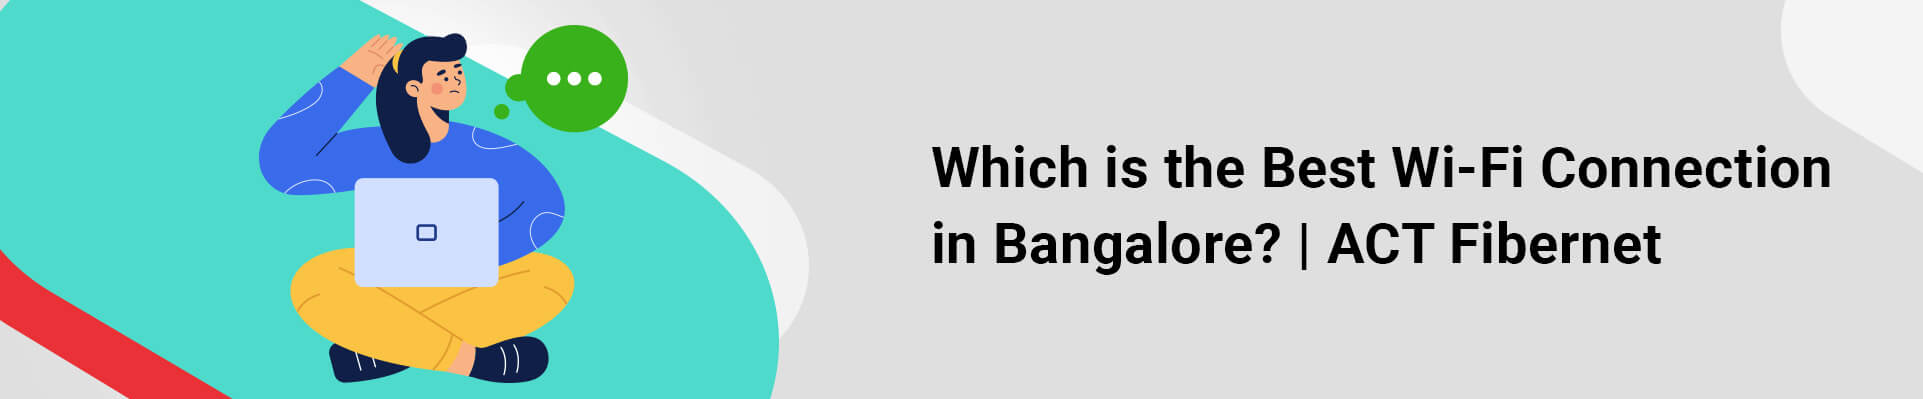 Best Wi-Fi Connection in Bangalore